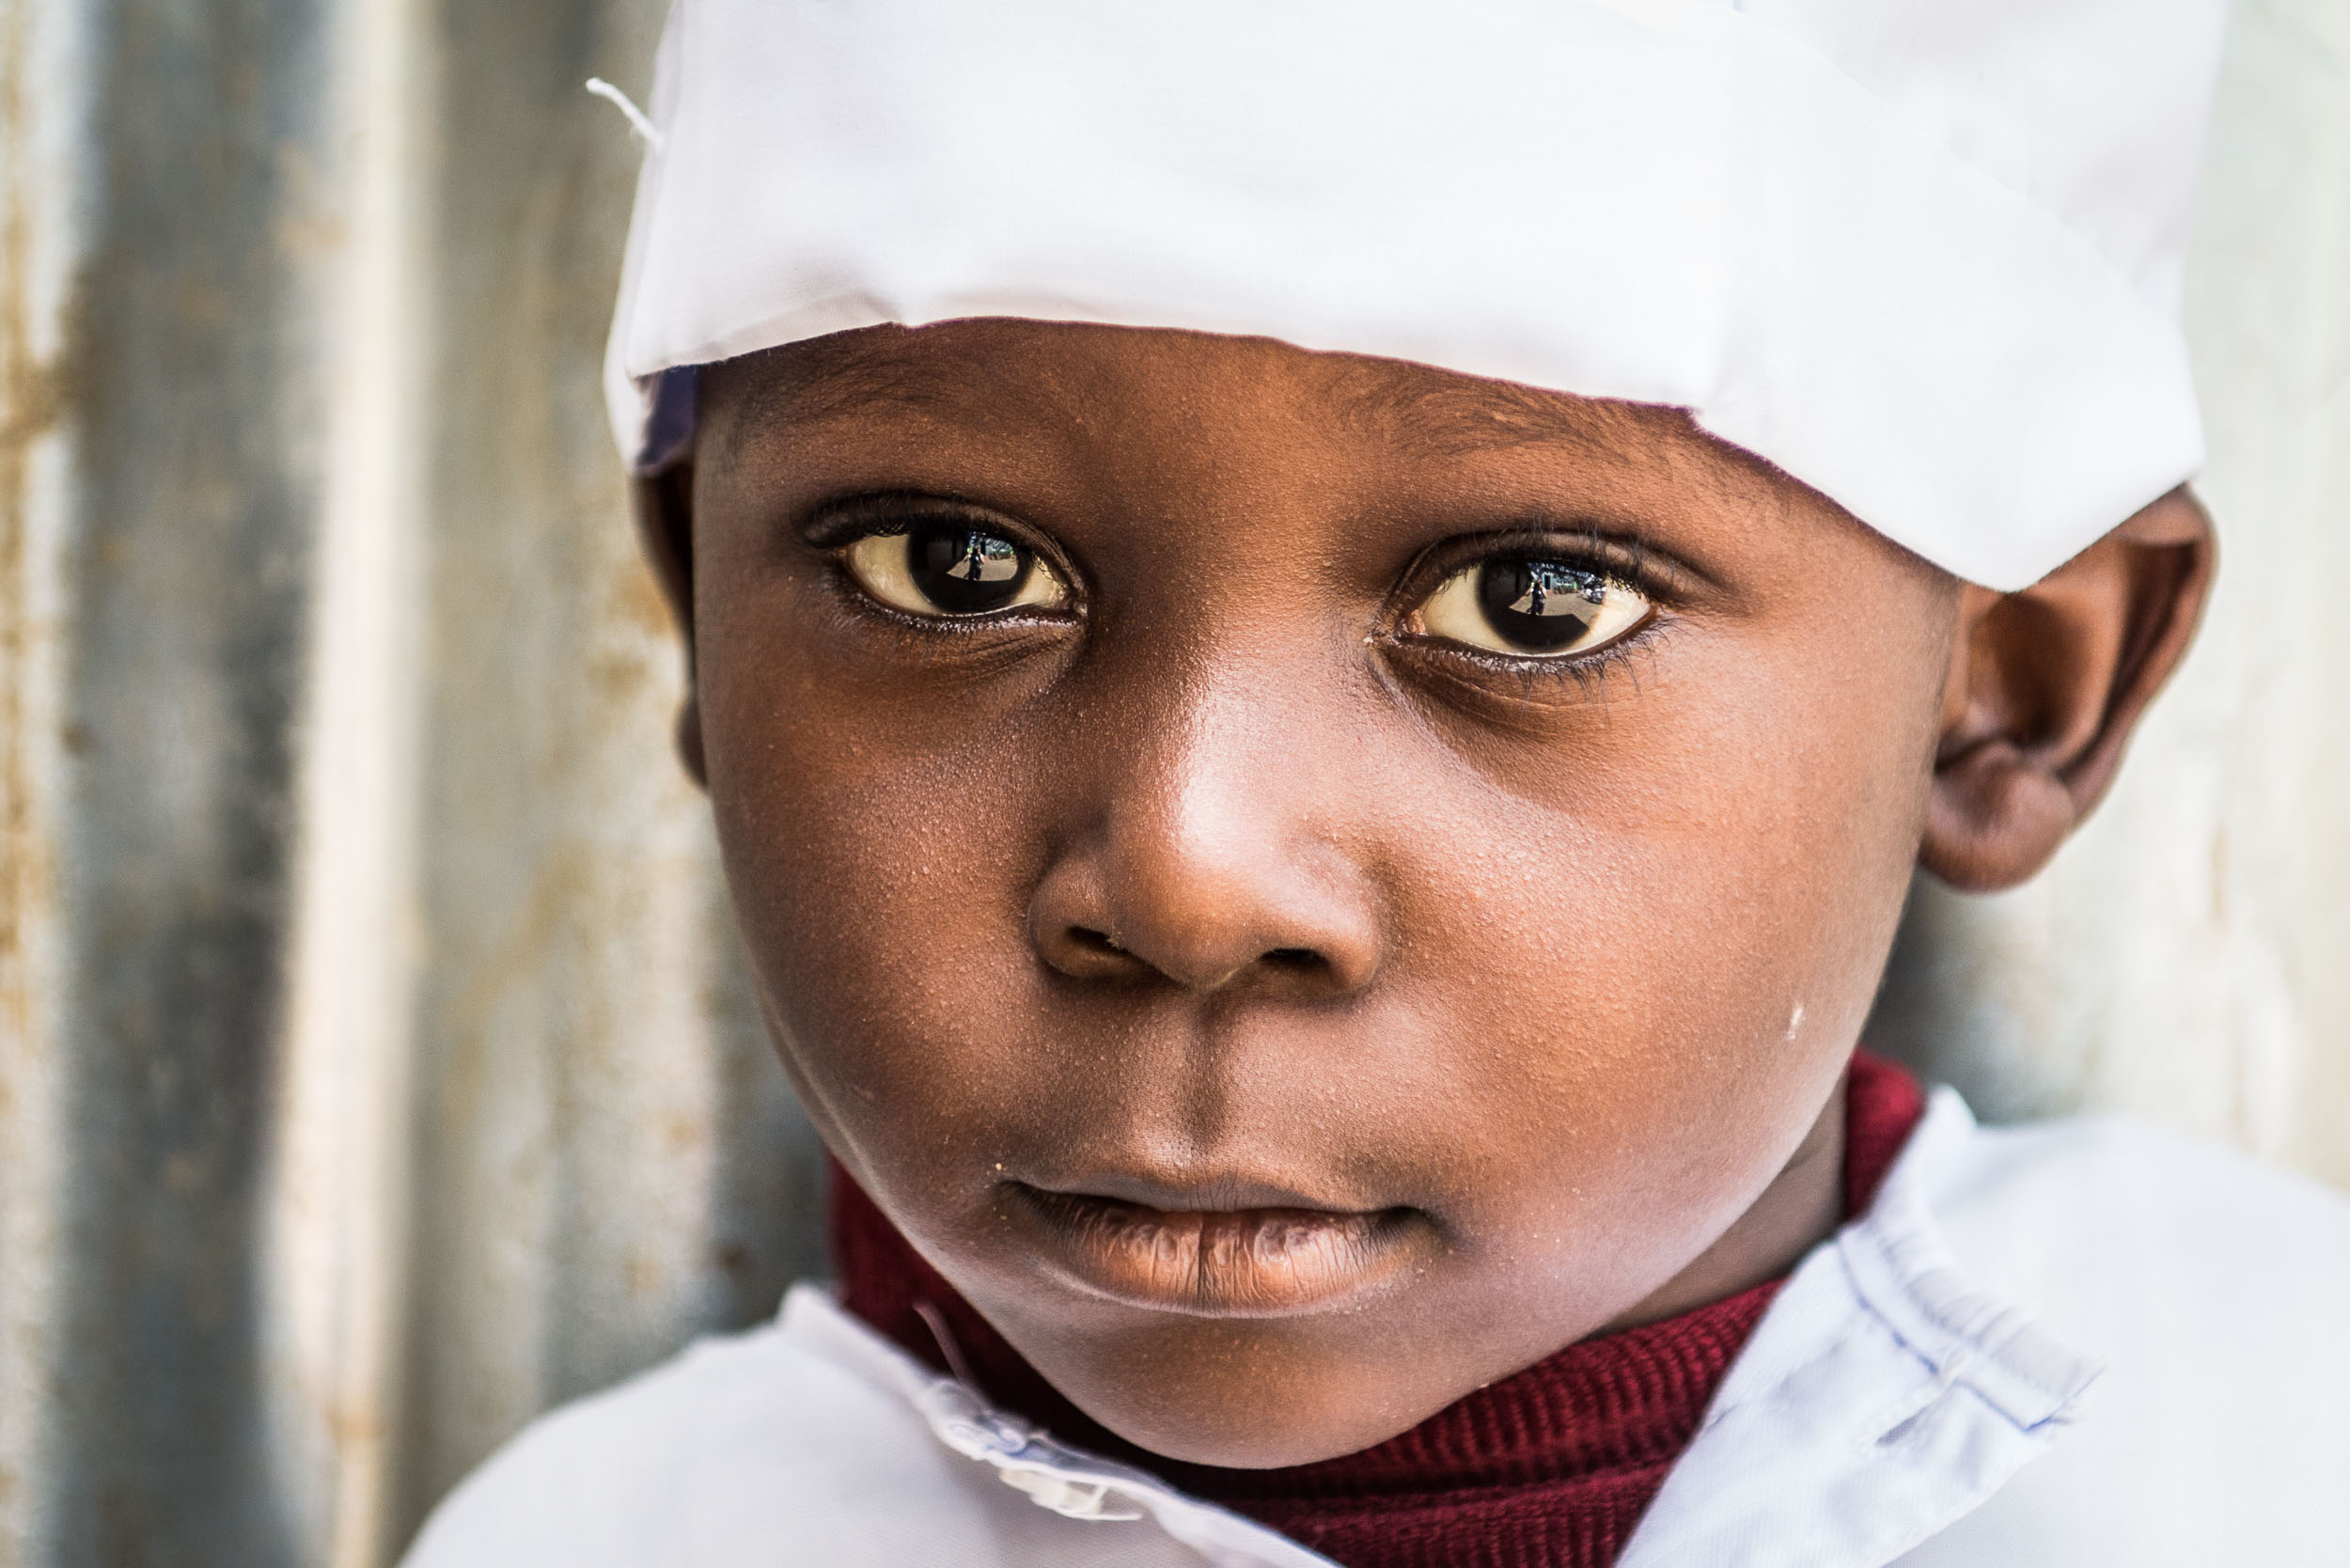 Kenya orphan boy - Travel - Photo credit Nicola Bailey.jpg